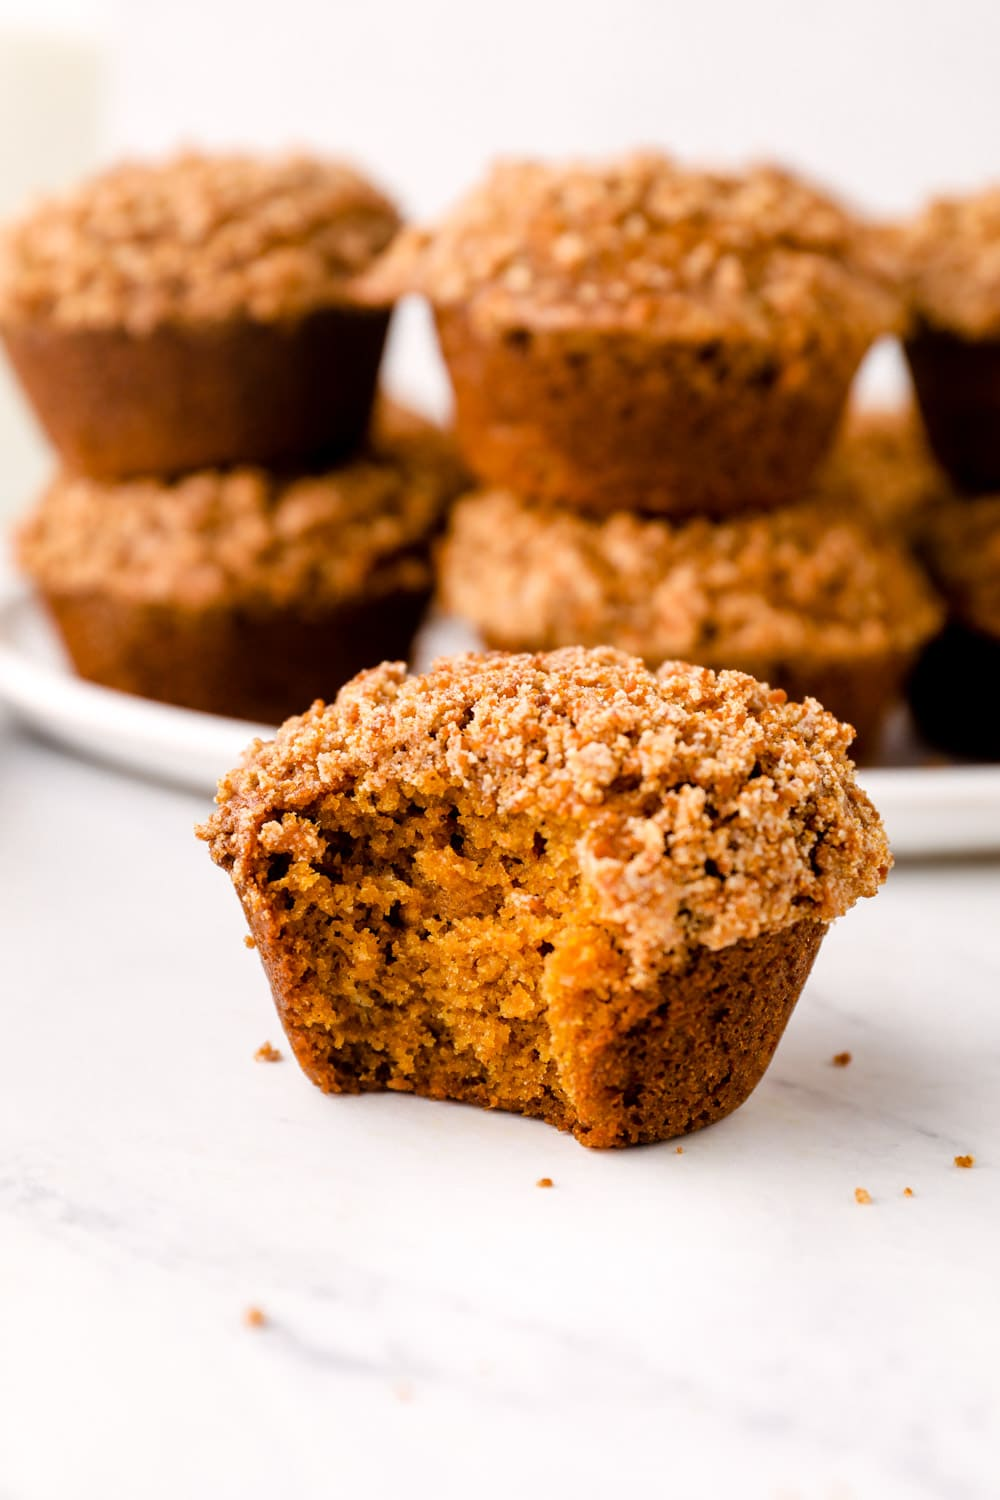 A bite out of a Gluten Free Pumpkin Muffin with crumb topping.